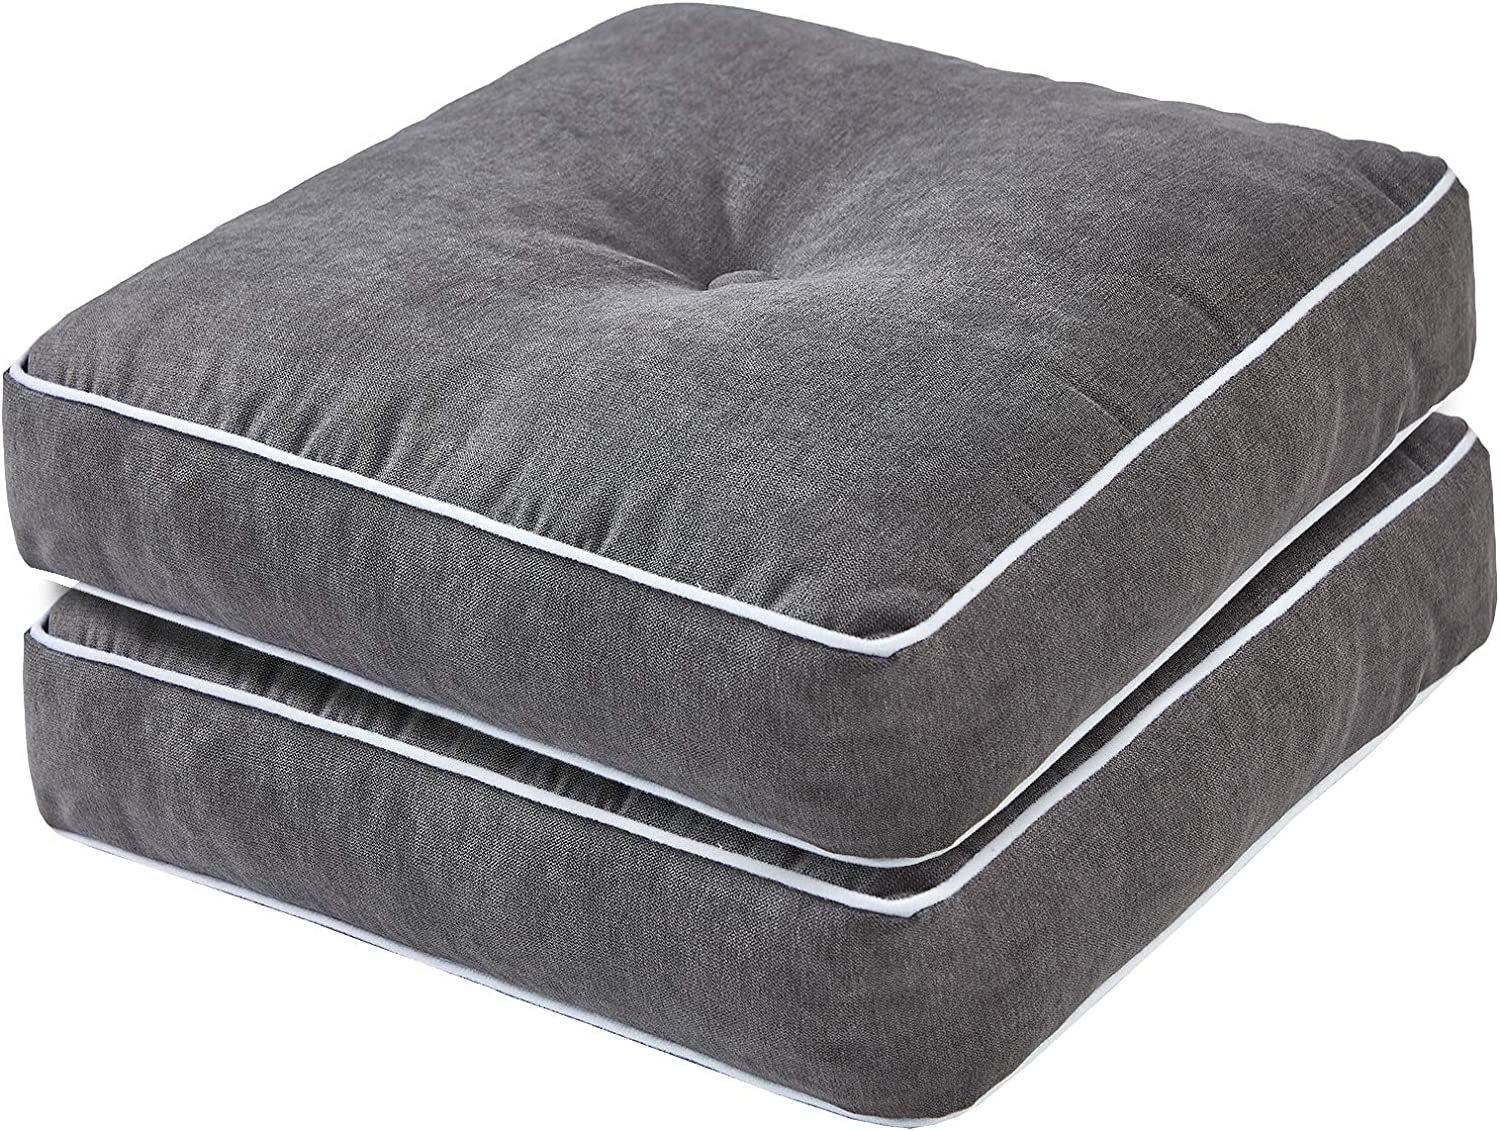 Rainlin Thicken Floor Pillows for Tufted Solid Manufacturer direct delivery Sea Portland Mall Seating Thick